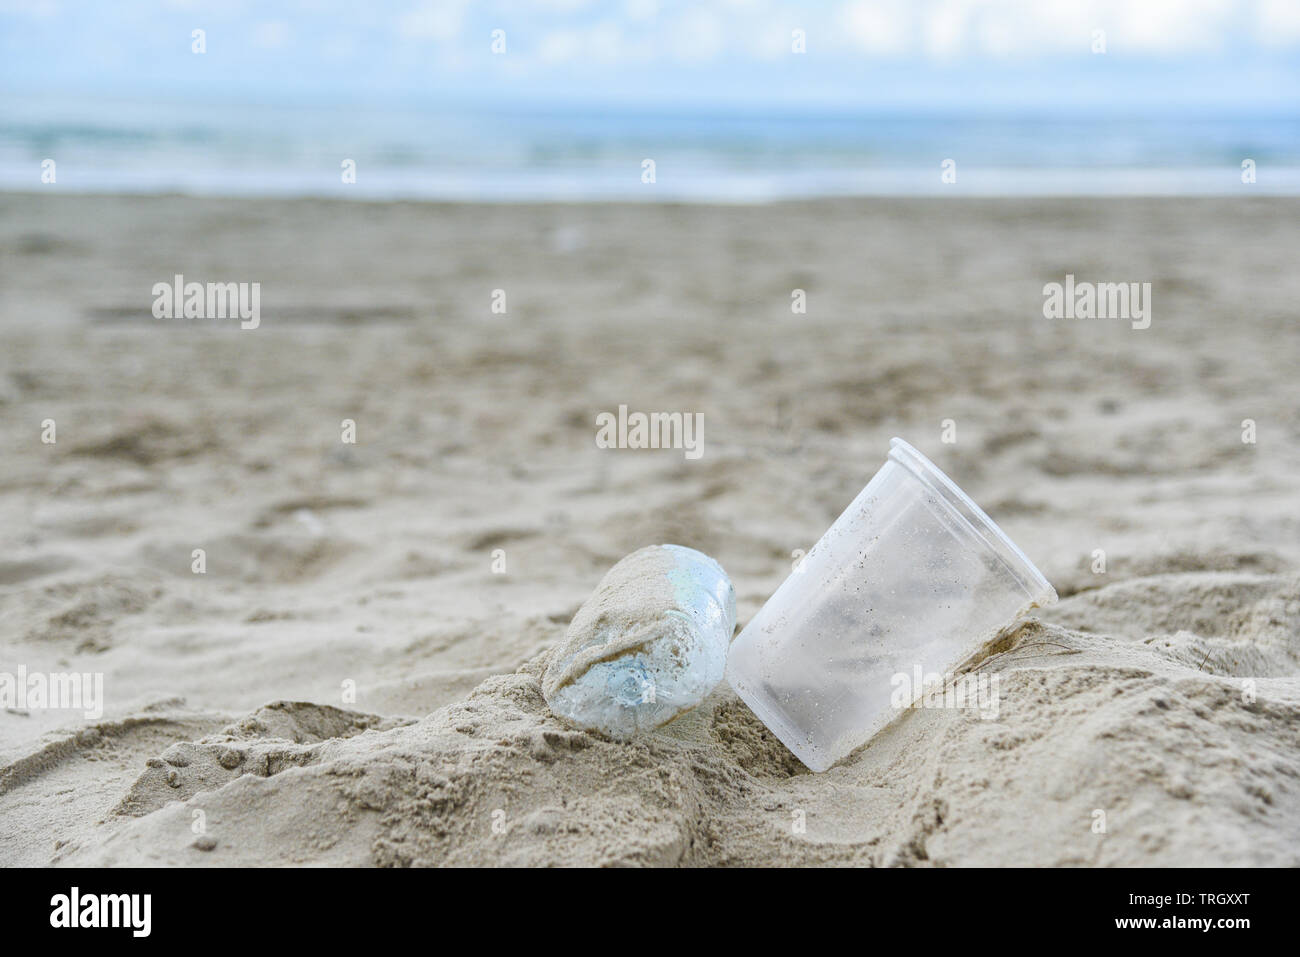 Garbage in the sea with plastic bottle , plastic cup and foam box on beach sandy dirty sea on the island / Environmental problem of rubbish pollution - Stock Image